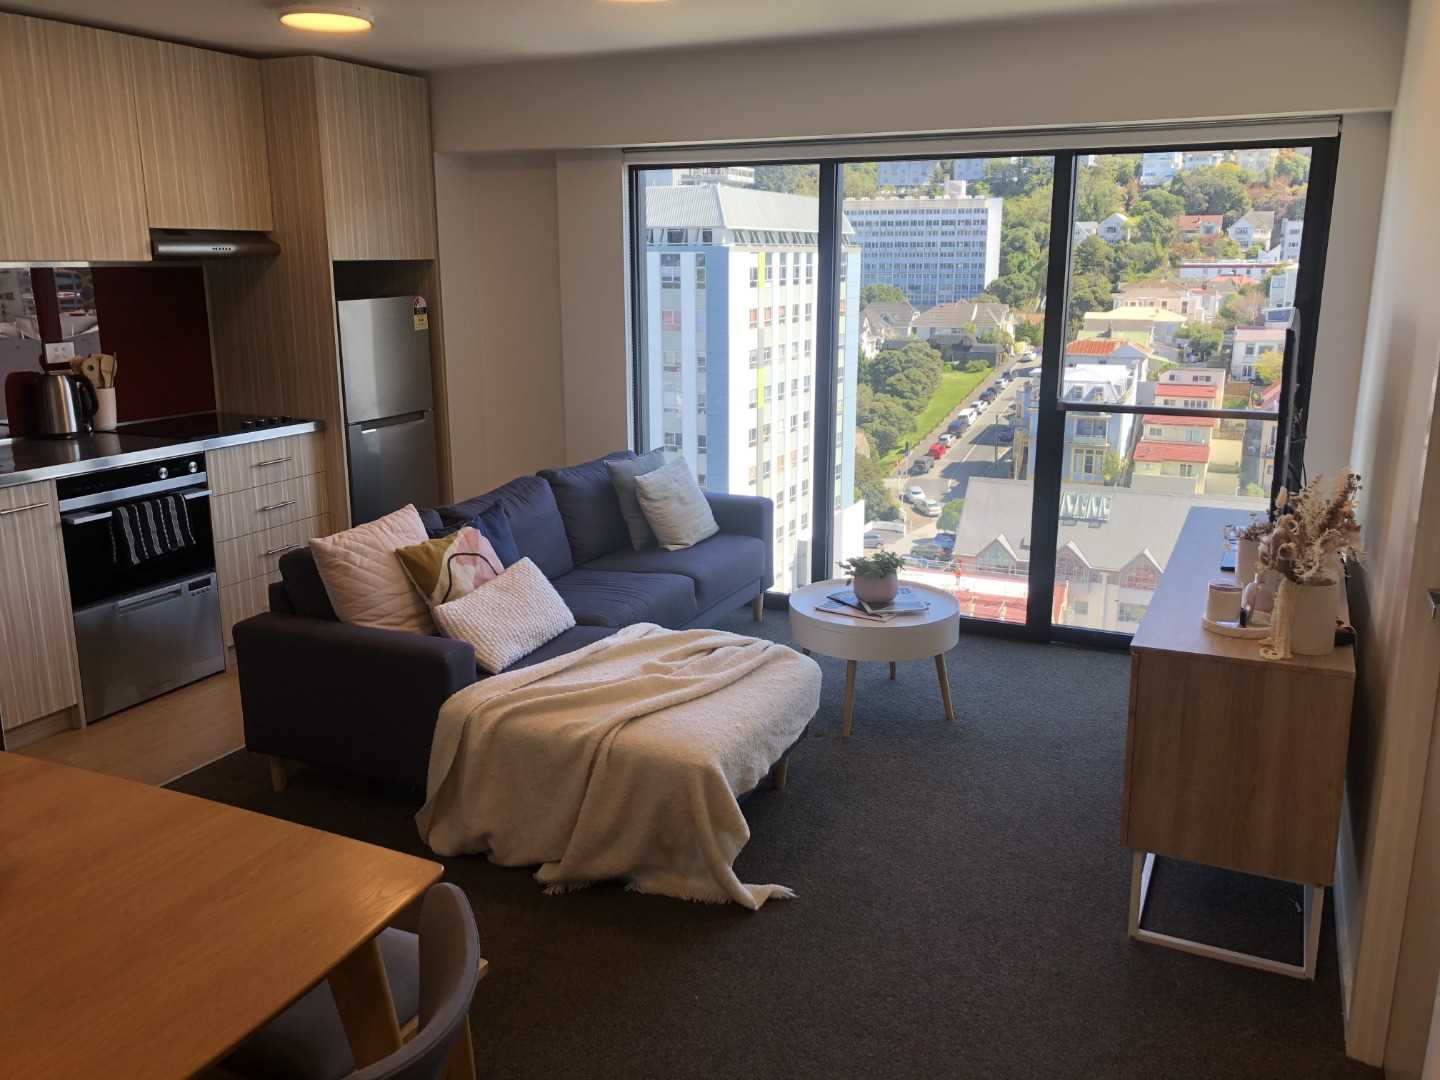 Real Estate For Rent Houses & Apartments : Near new modern 1 bedroom apartment, Wellington